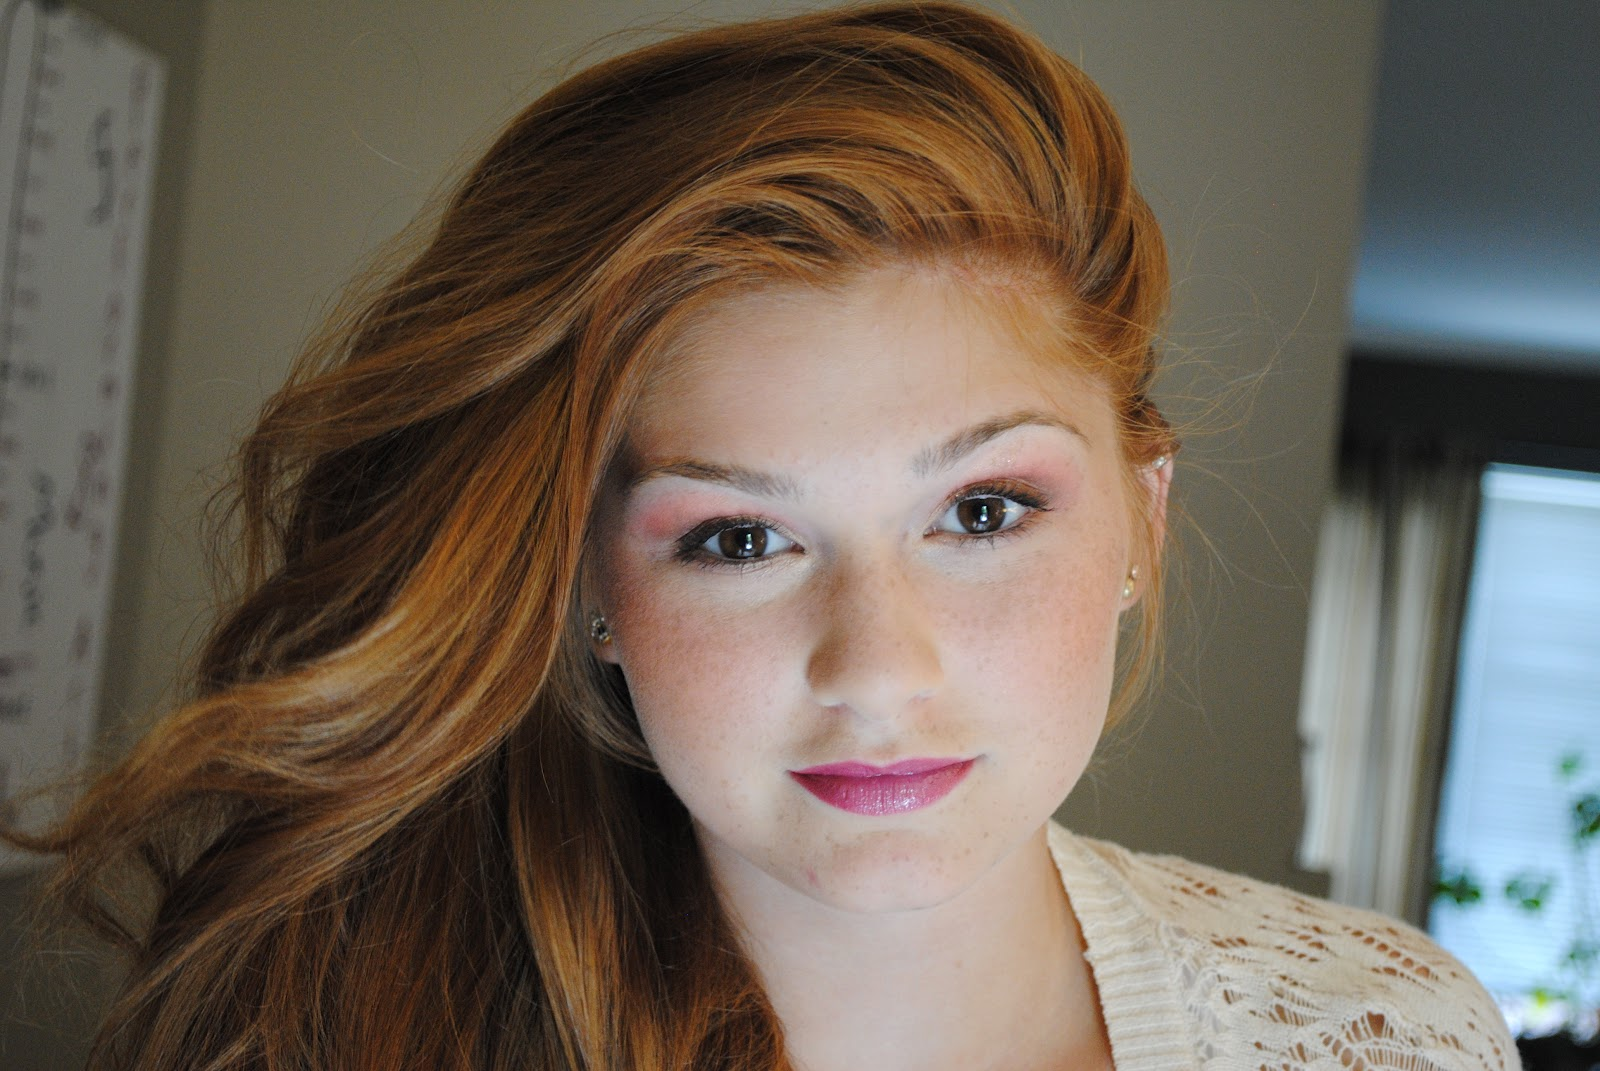 Lizzie Loves Makeup: Makeup For Redheads: Full Face Tutorial